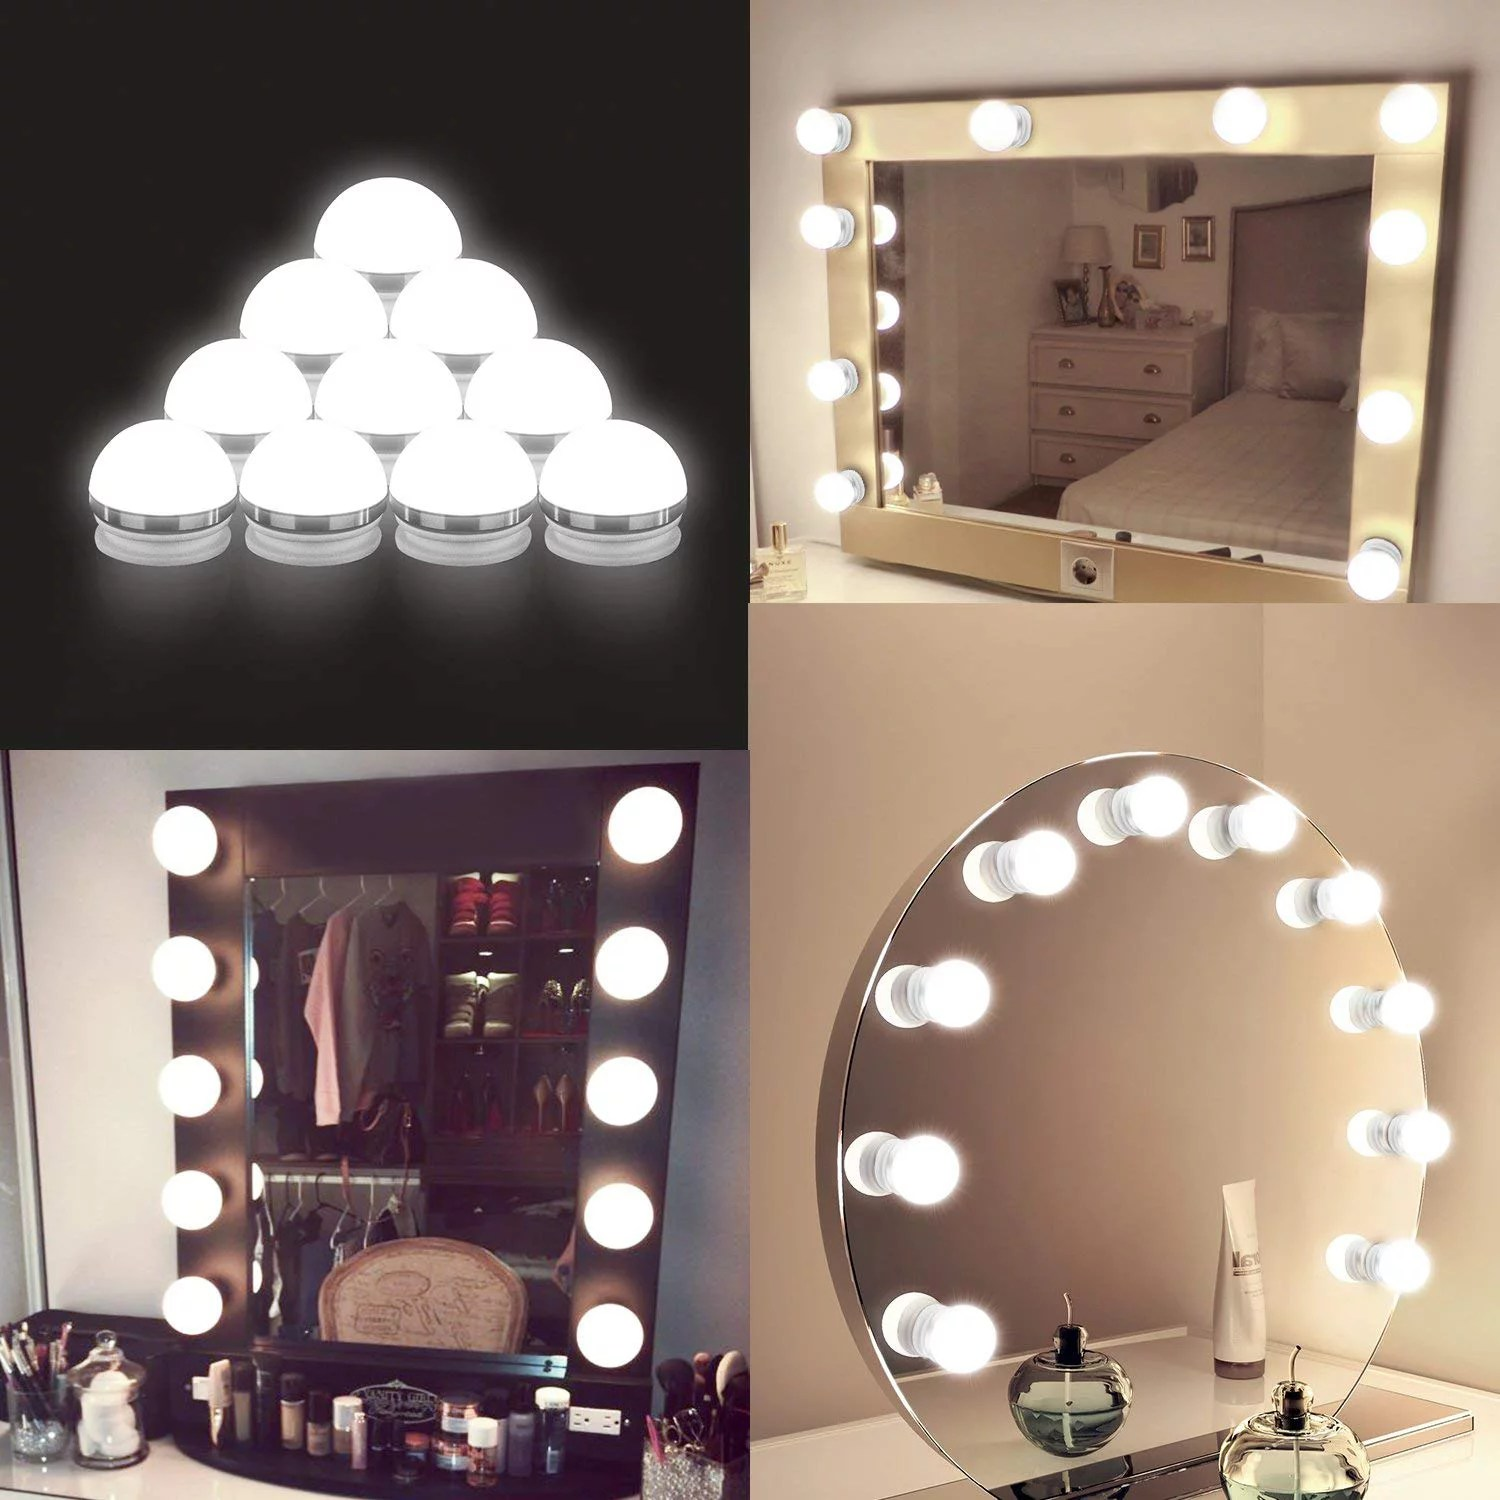 vanity lights for mirror diy hollywood lighted makeup vanity mirror with dimmable lights stick on led mirror light kit for vanity set plug in